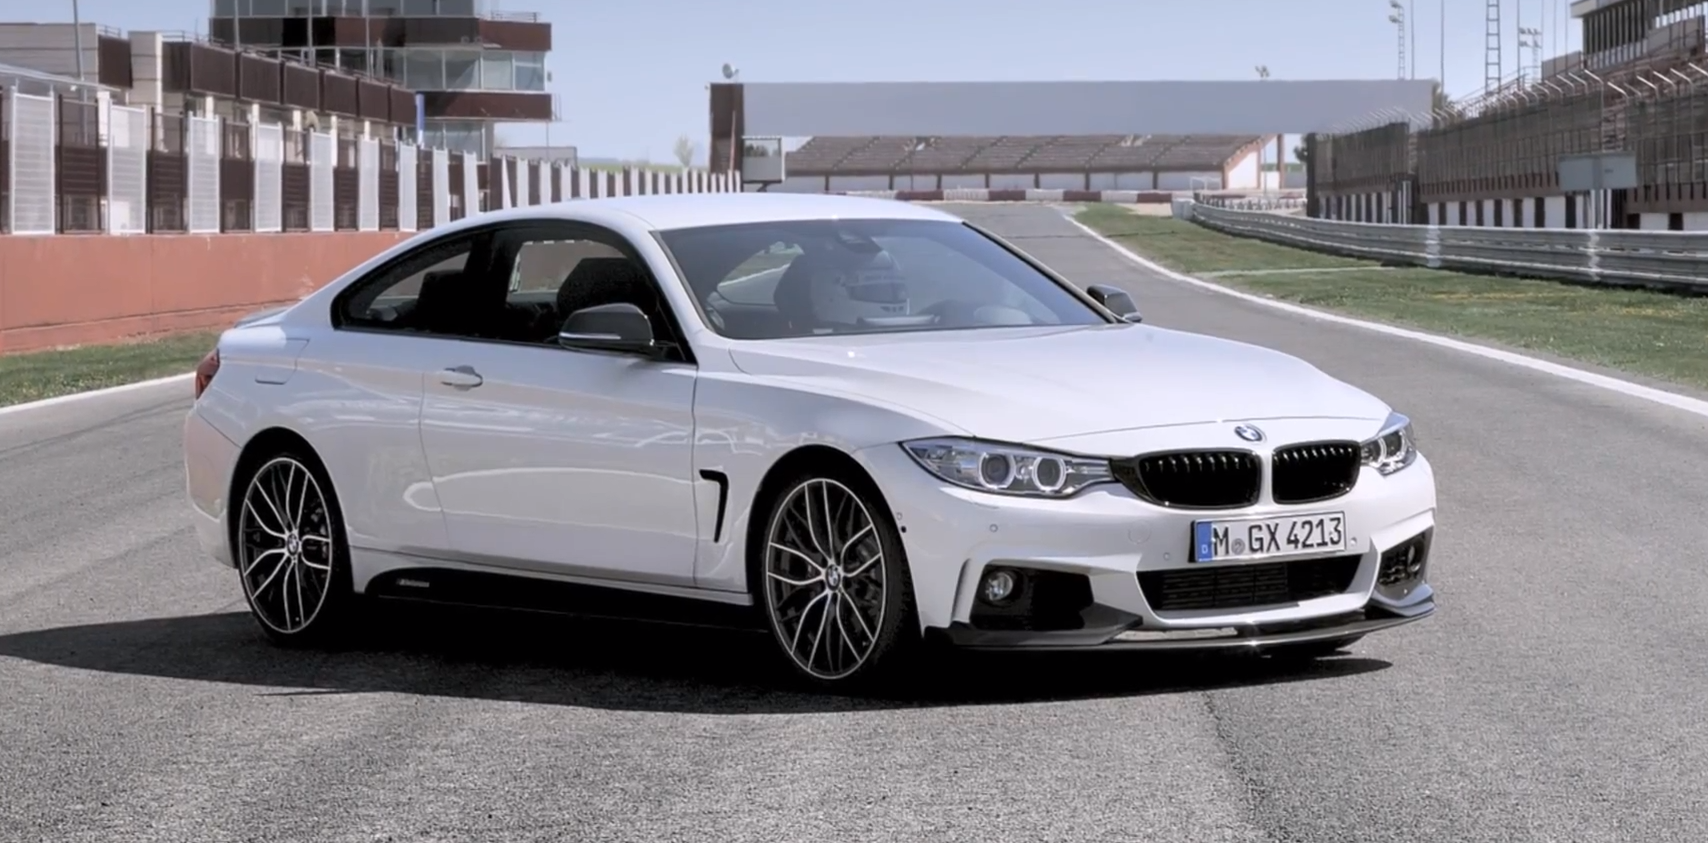 2014 BMW 2 Series Coupe with M Performance Parts photo - 1